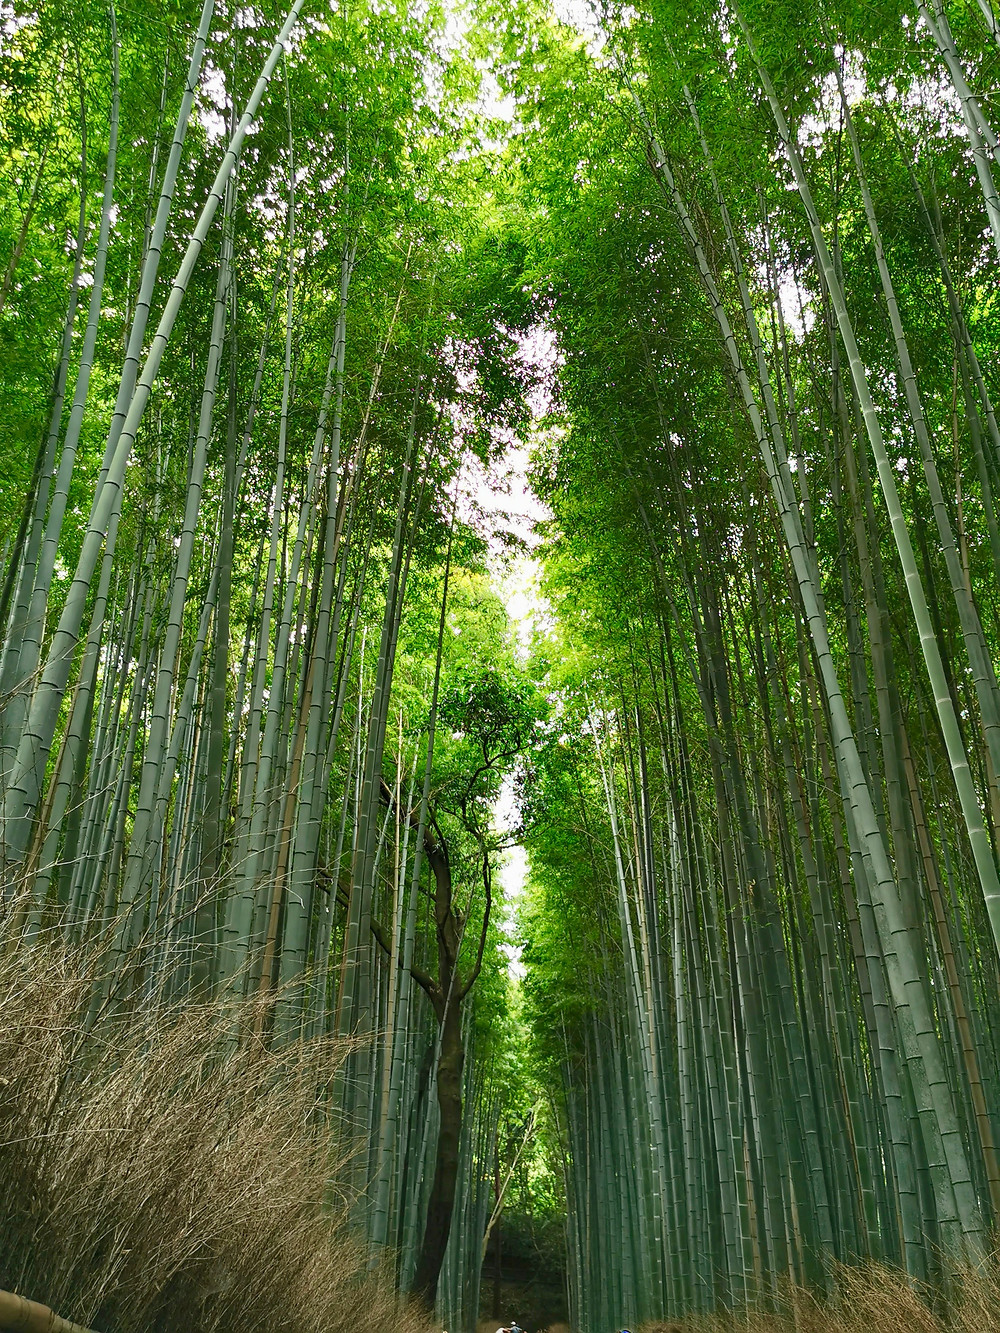 Bamboo Grove Kyoto Bamboo Forest